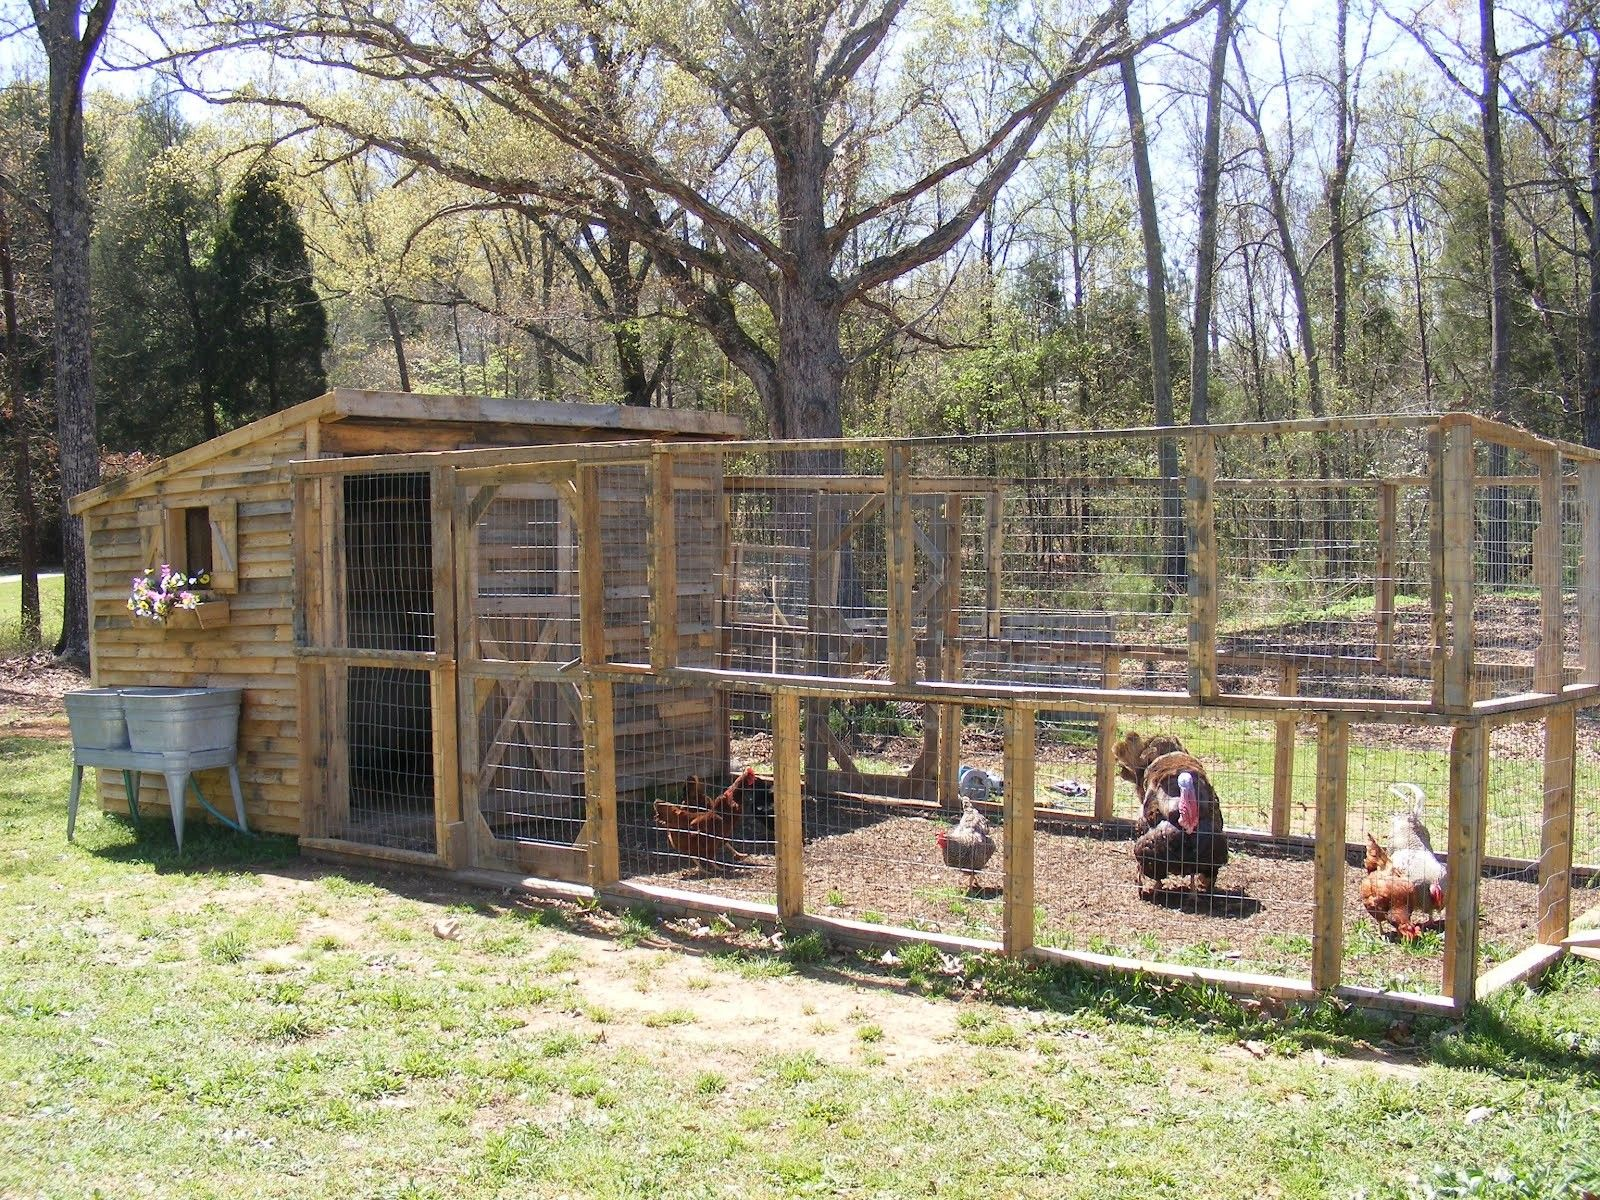 Chicken coops made from wood pallets dngj8nf for Wood pallet chicken coop